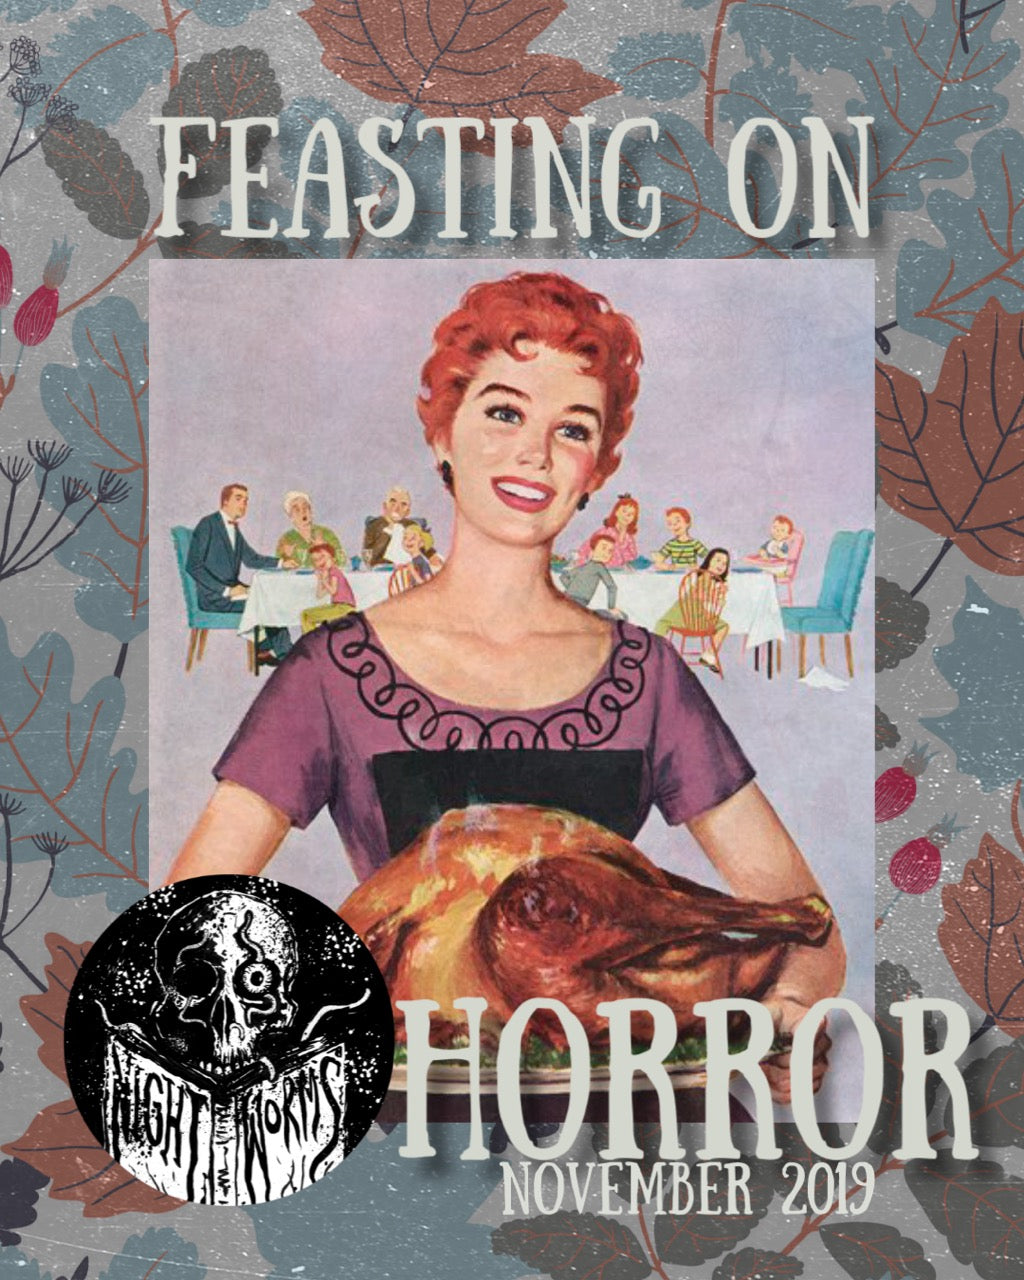 Feasting on Horror - November 2019: